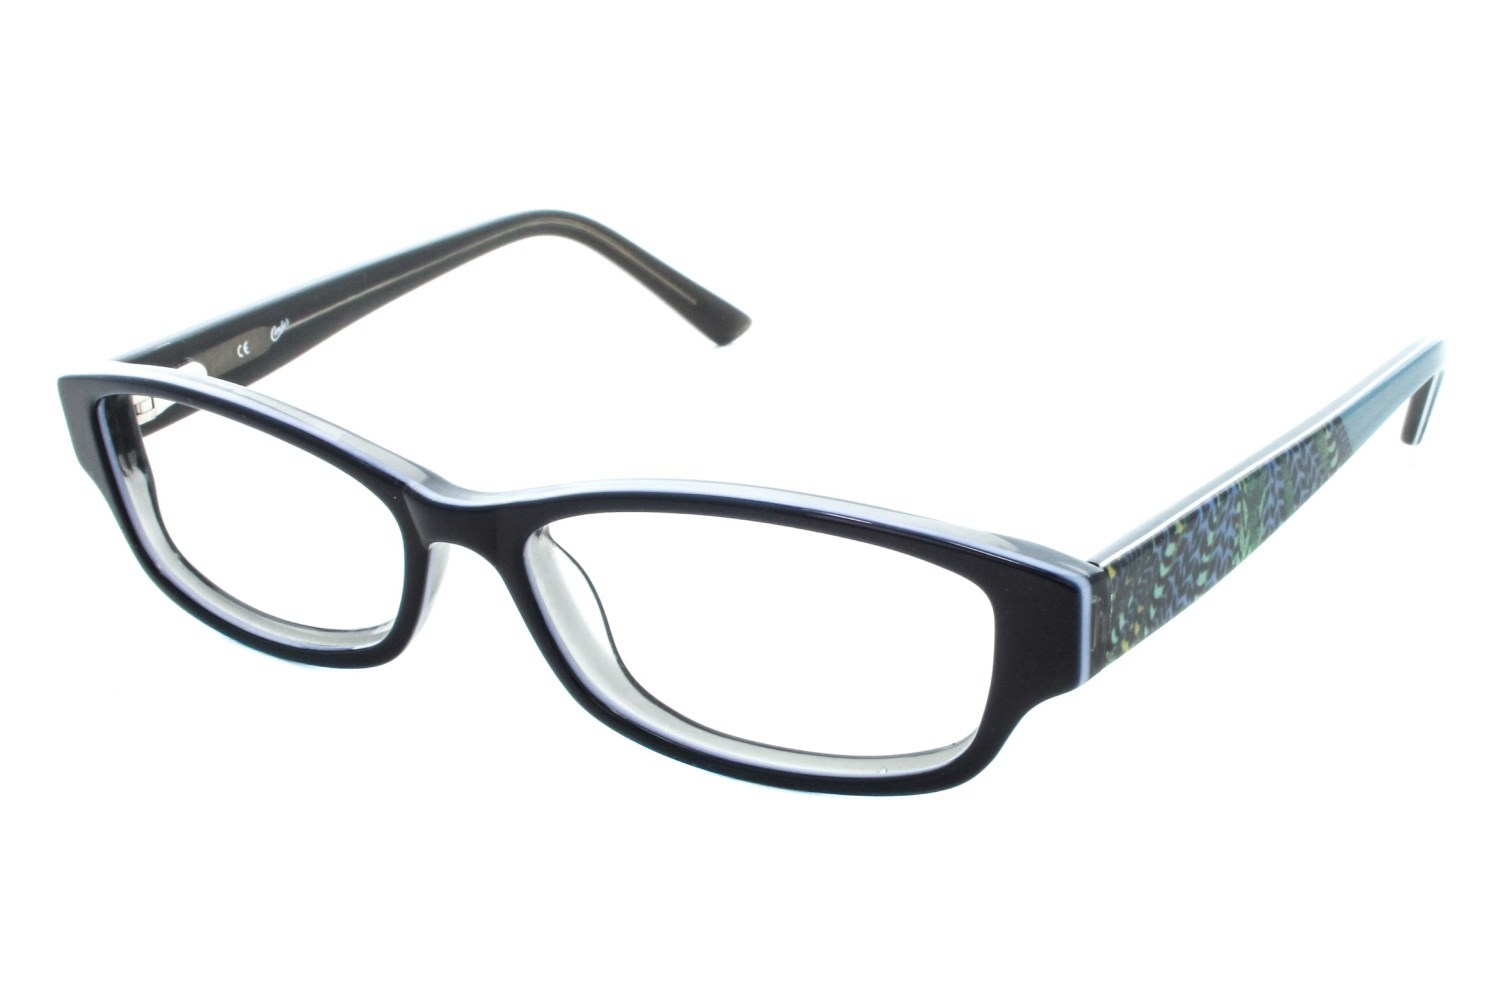 Candies C Frankie Prescription Eyeglasses Frames